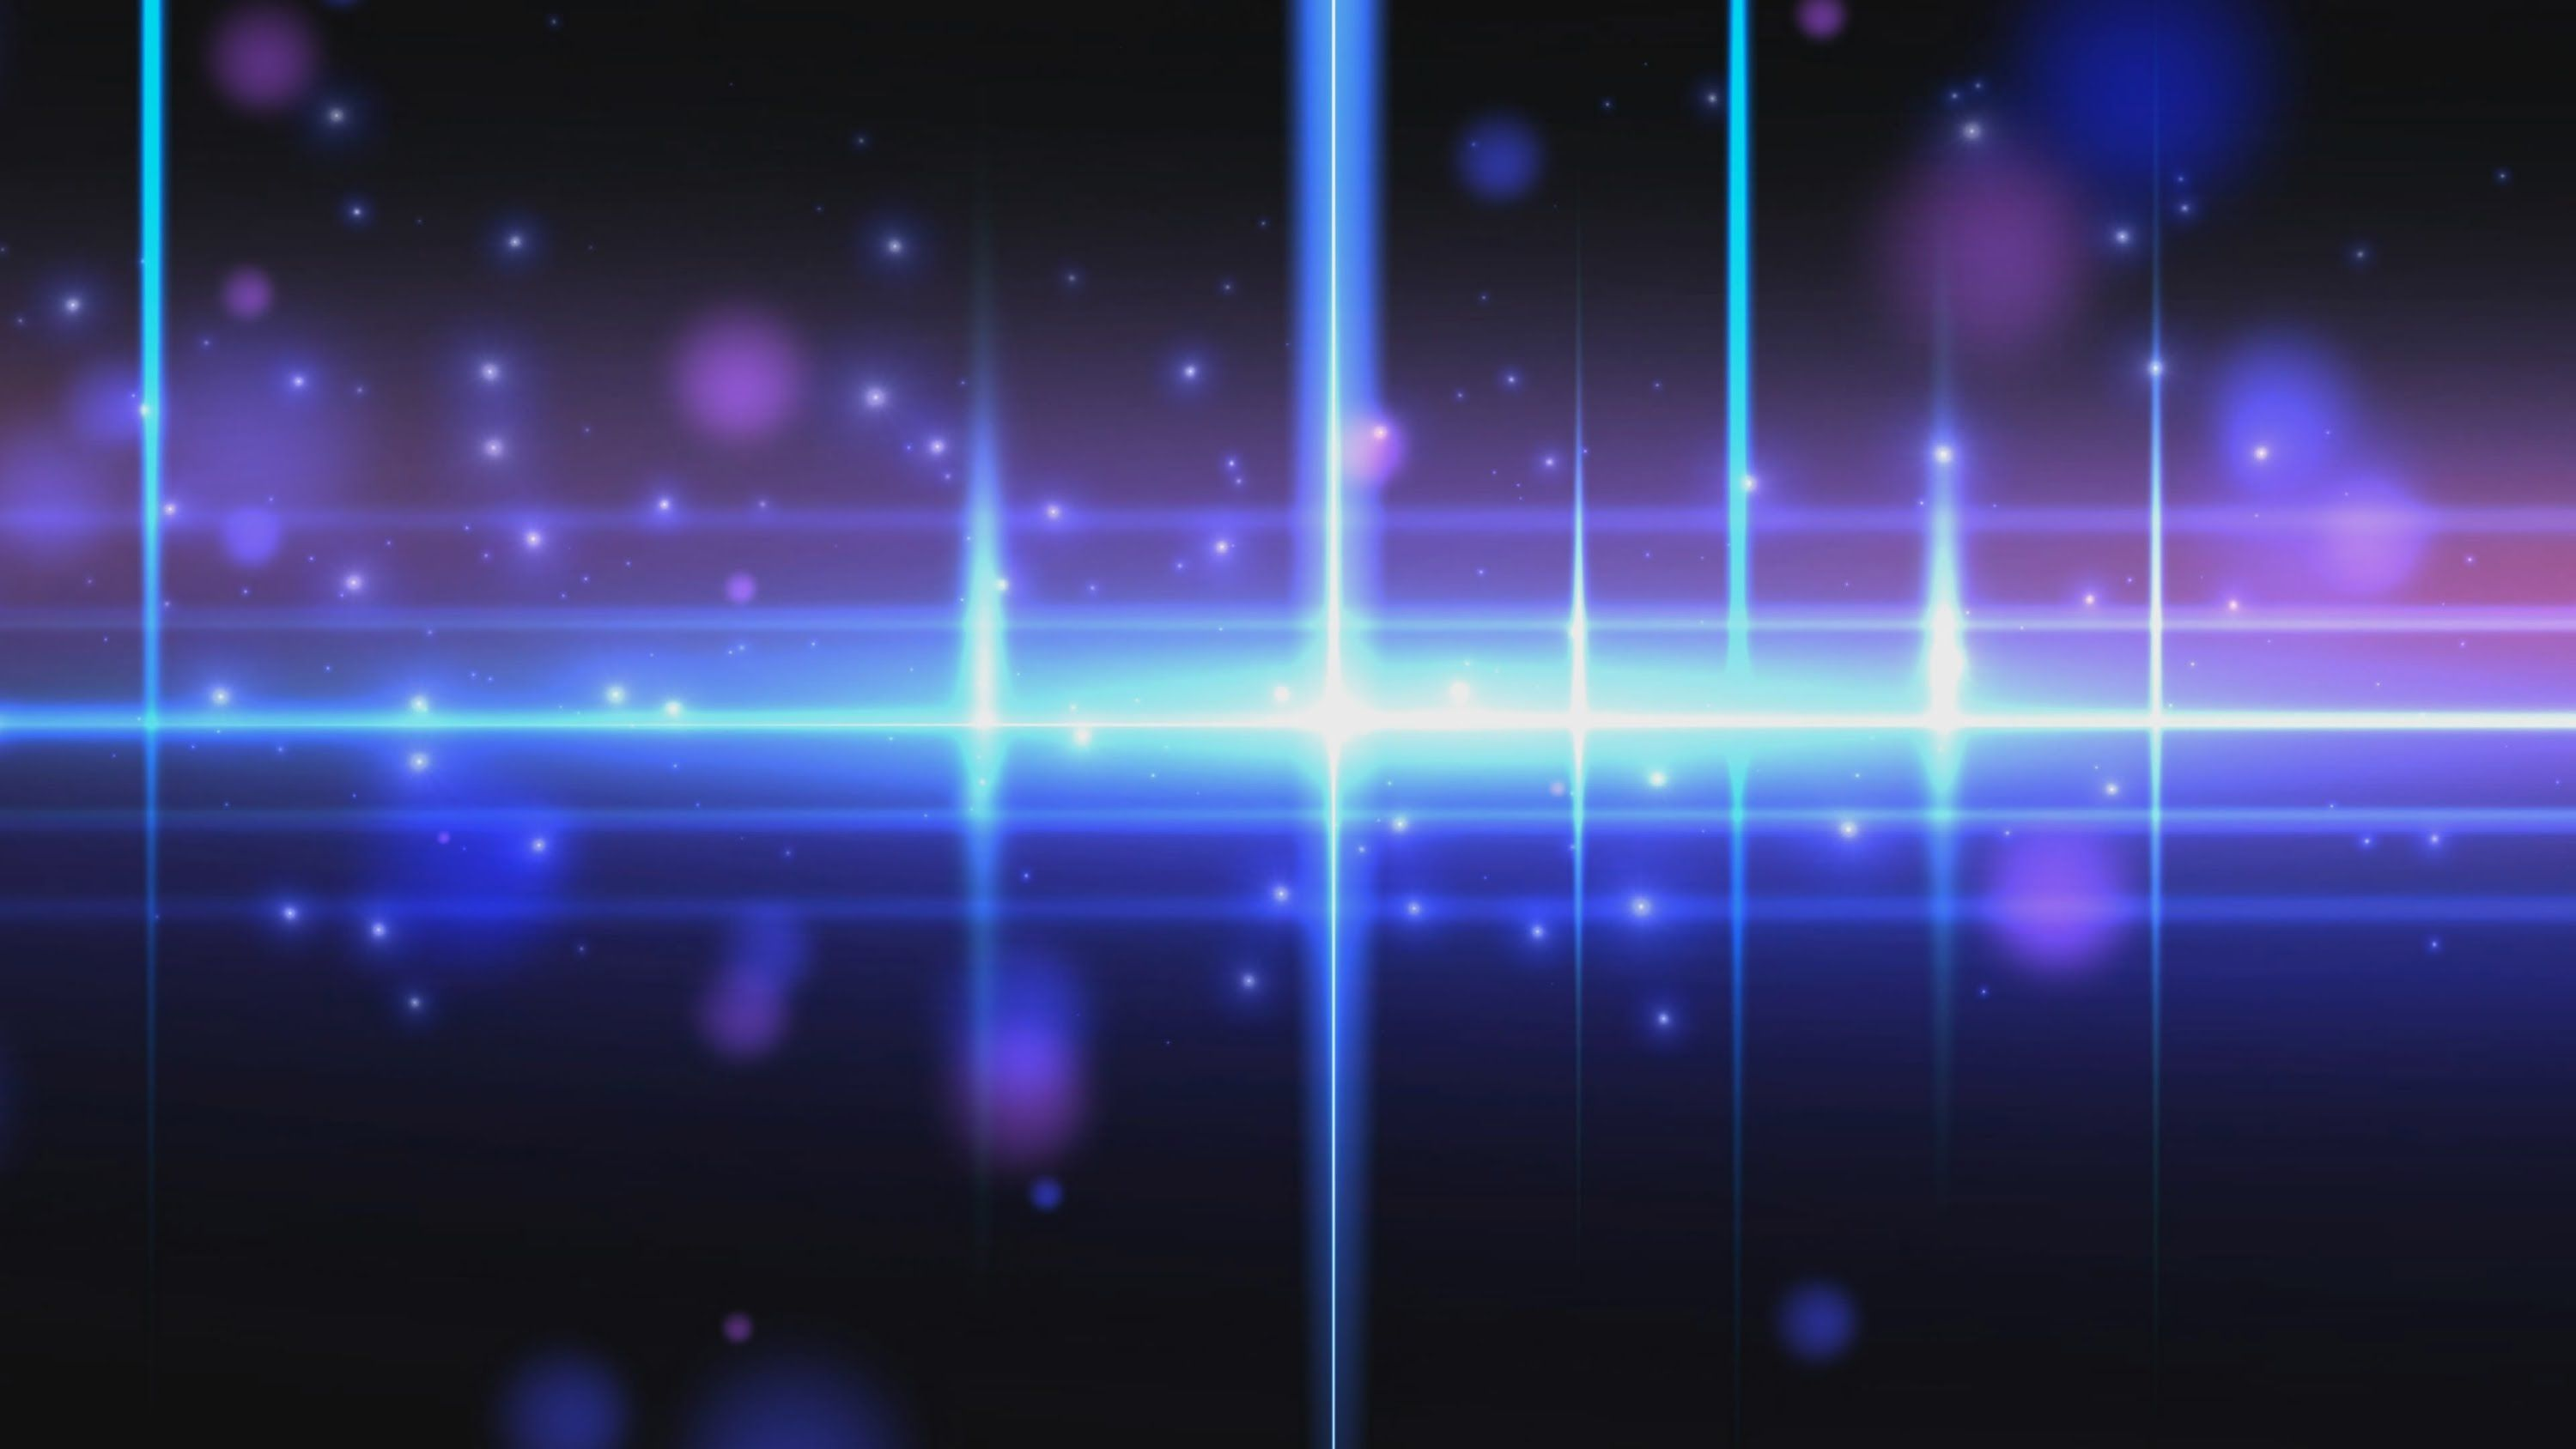 Music background images free vector download Free vector | HD